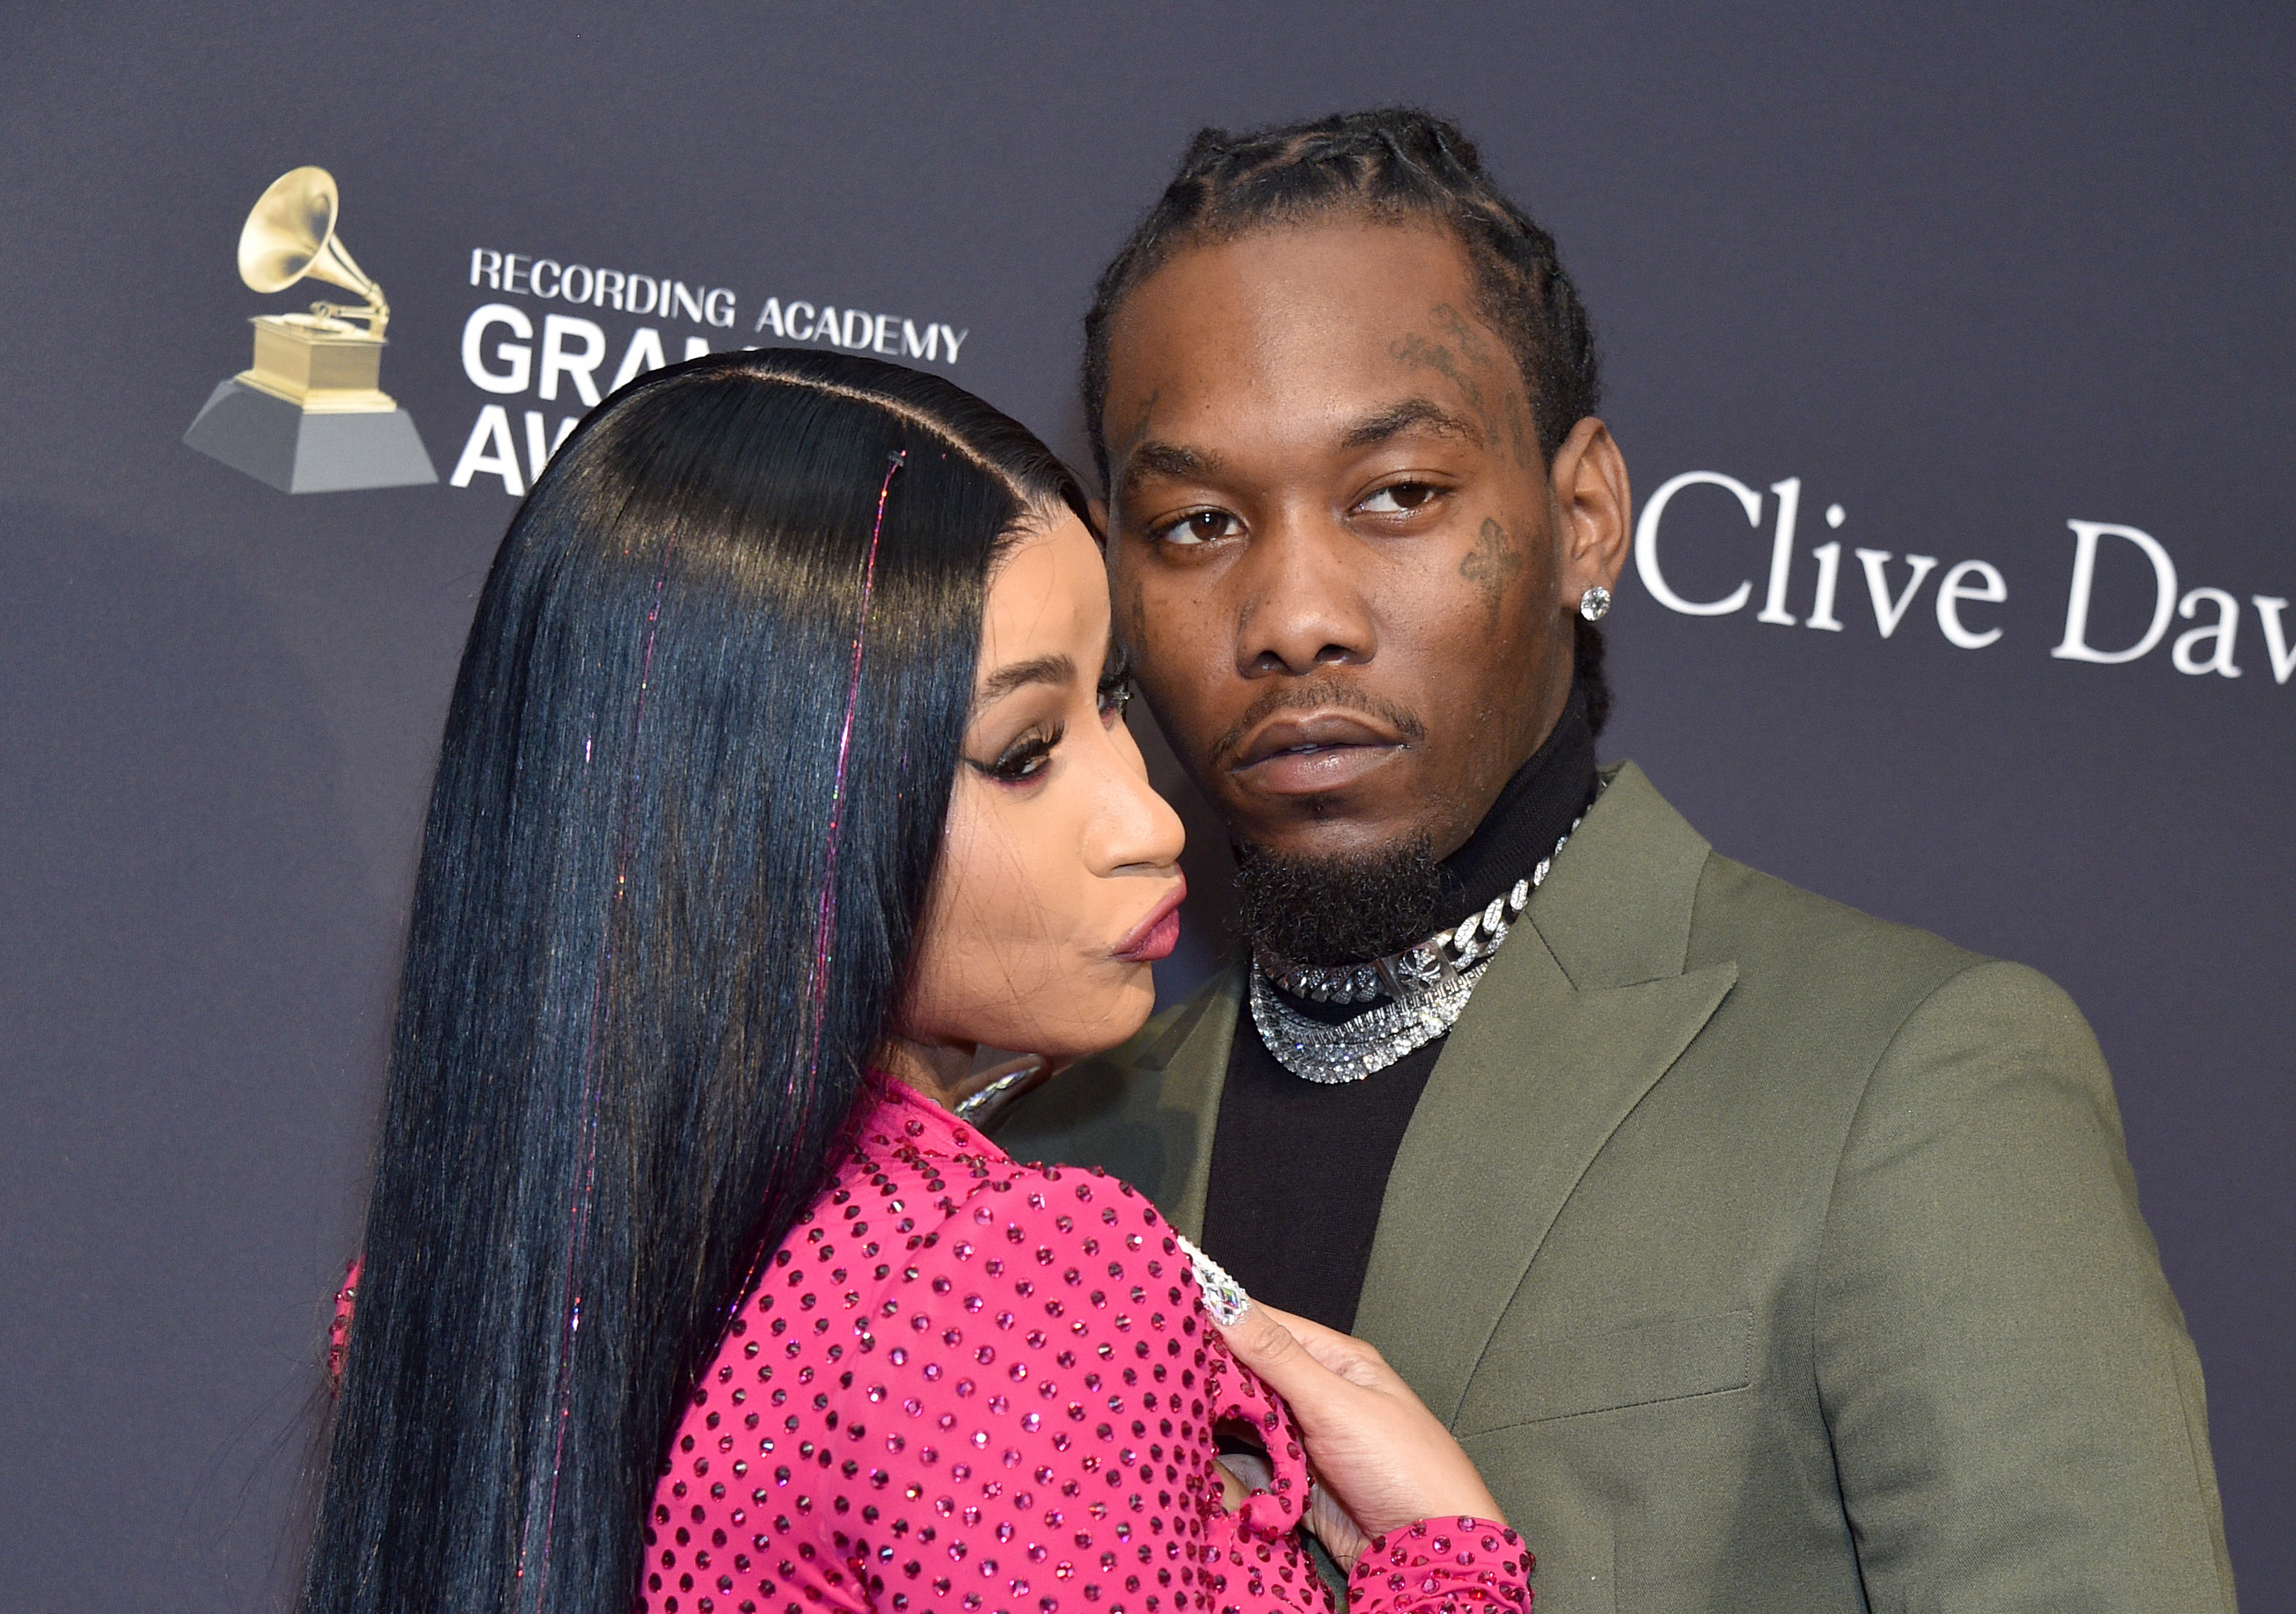 Offset Lands Flying Falcon Punch at Man who Sprayed Cardi B With Champagne